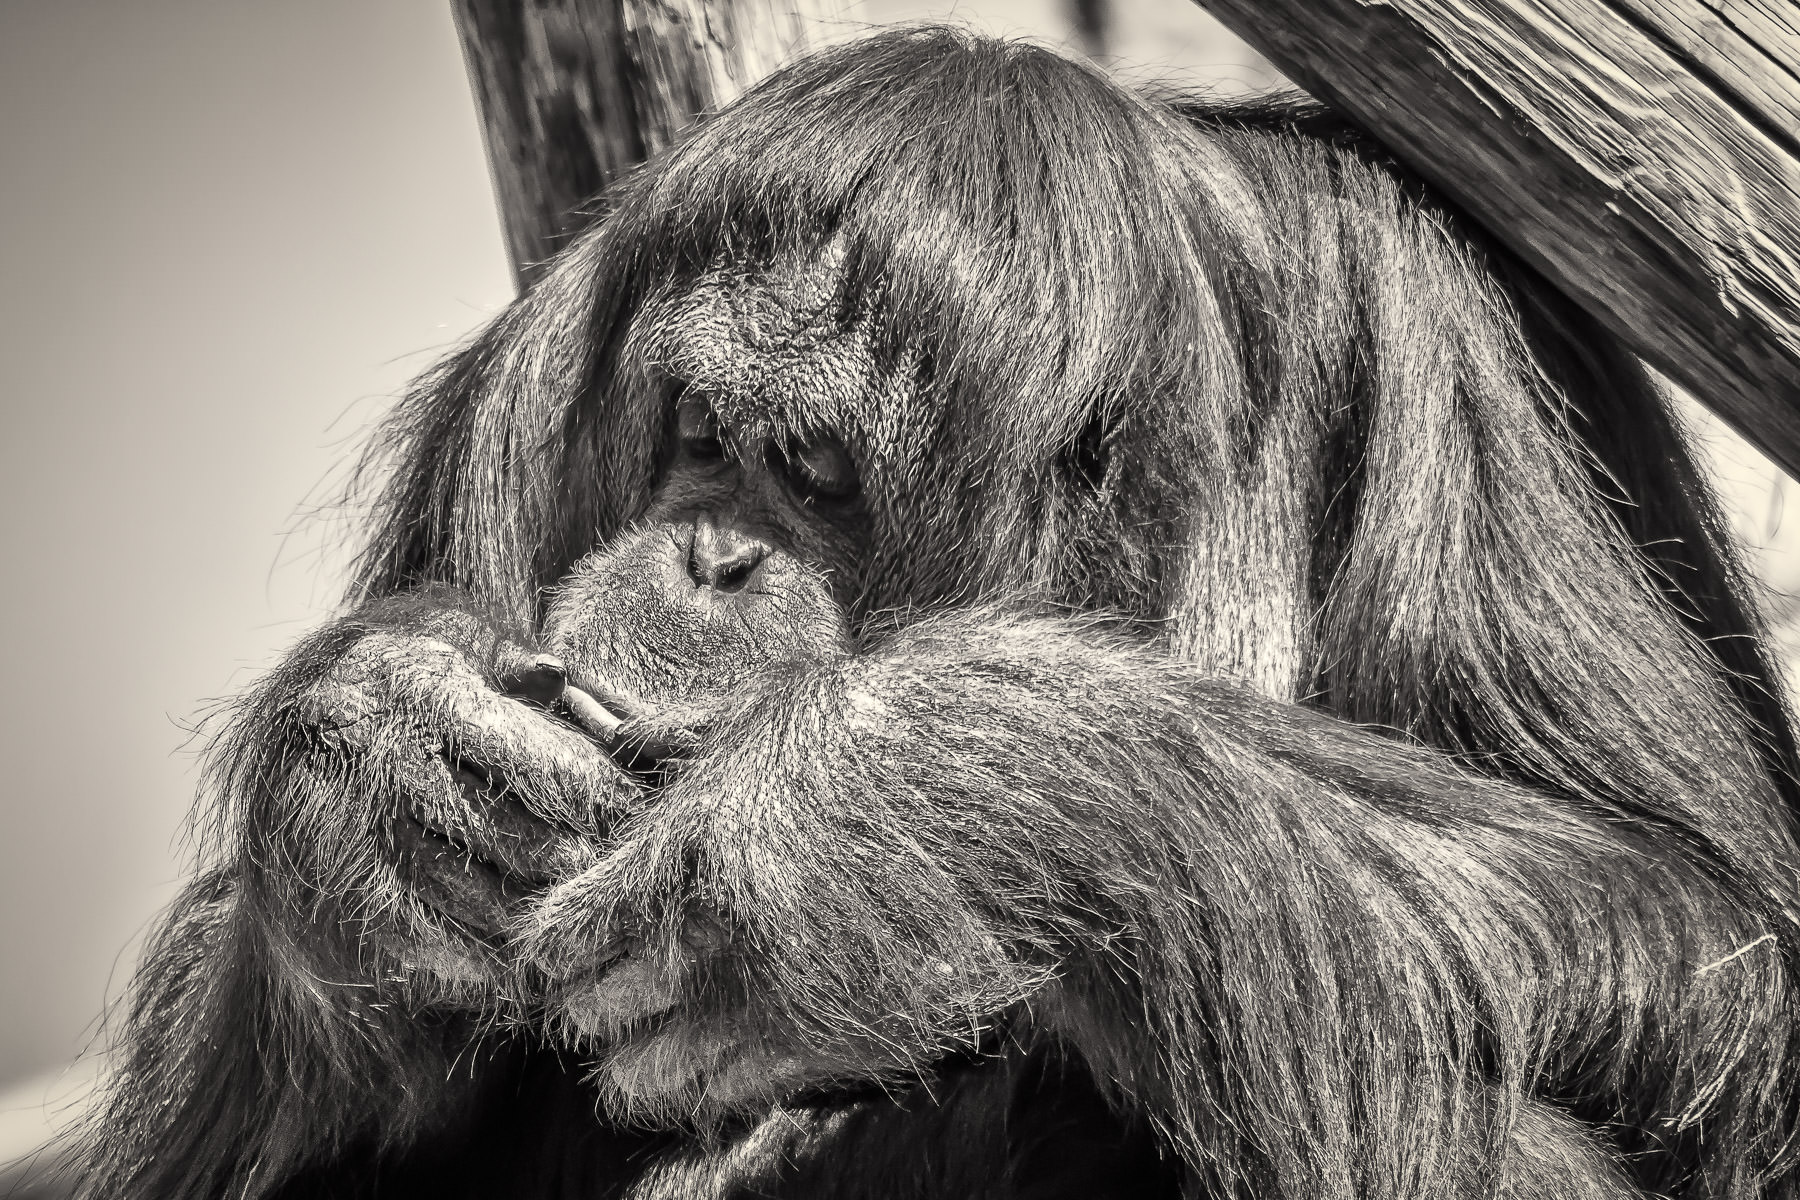 fort worth zoo orangutan